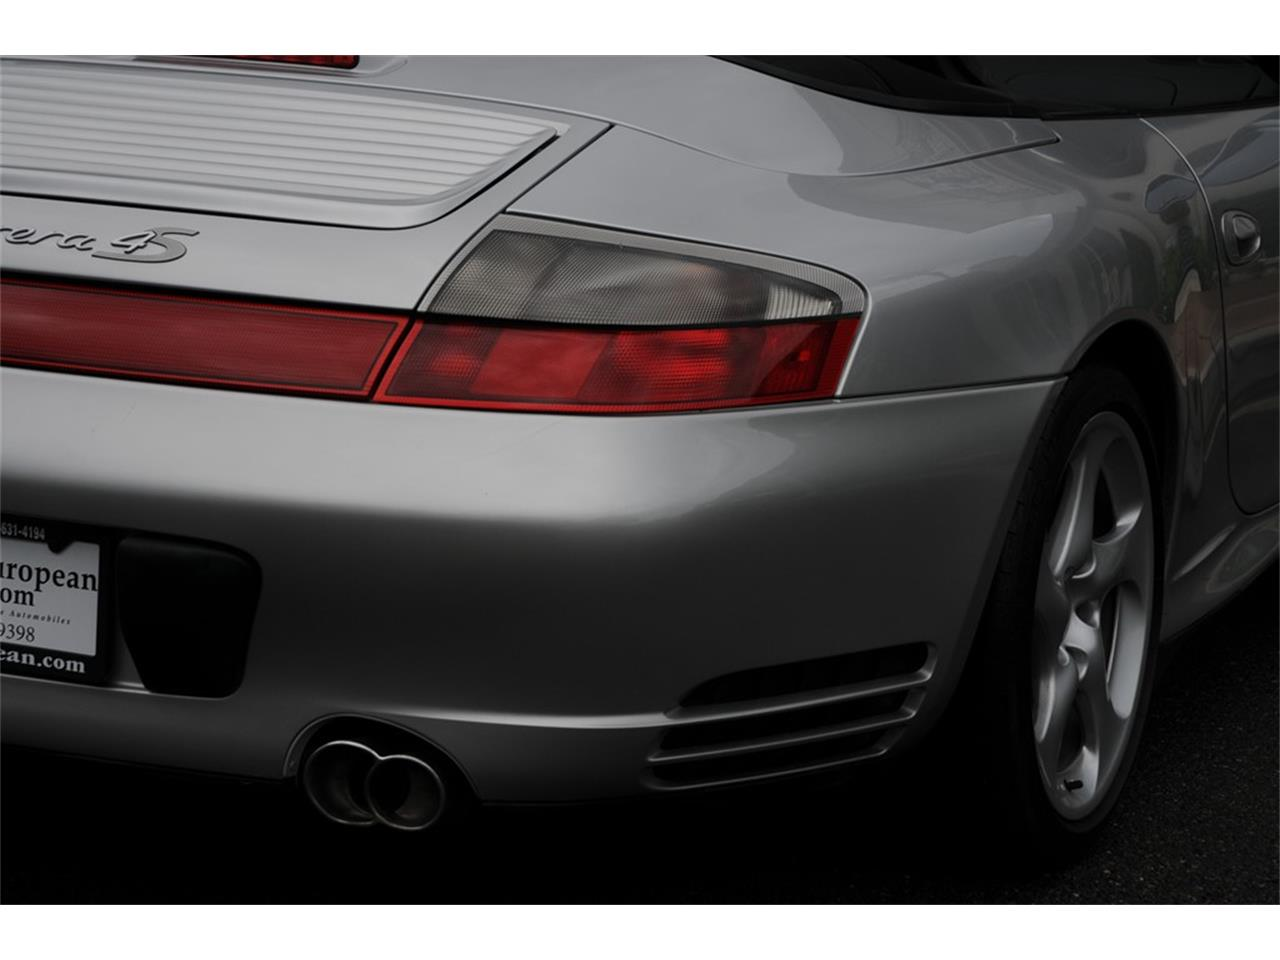 Large Picture of 2004 Porsche 911 Carrera 4S Cabriolet Offered by Star European Inc. - QK9K